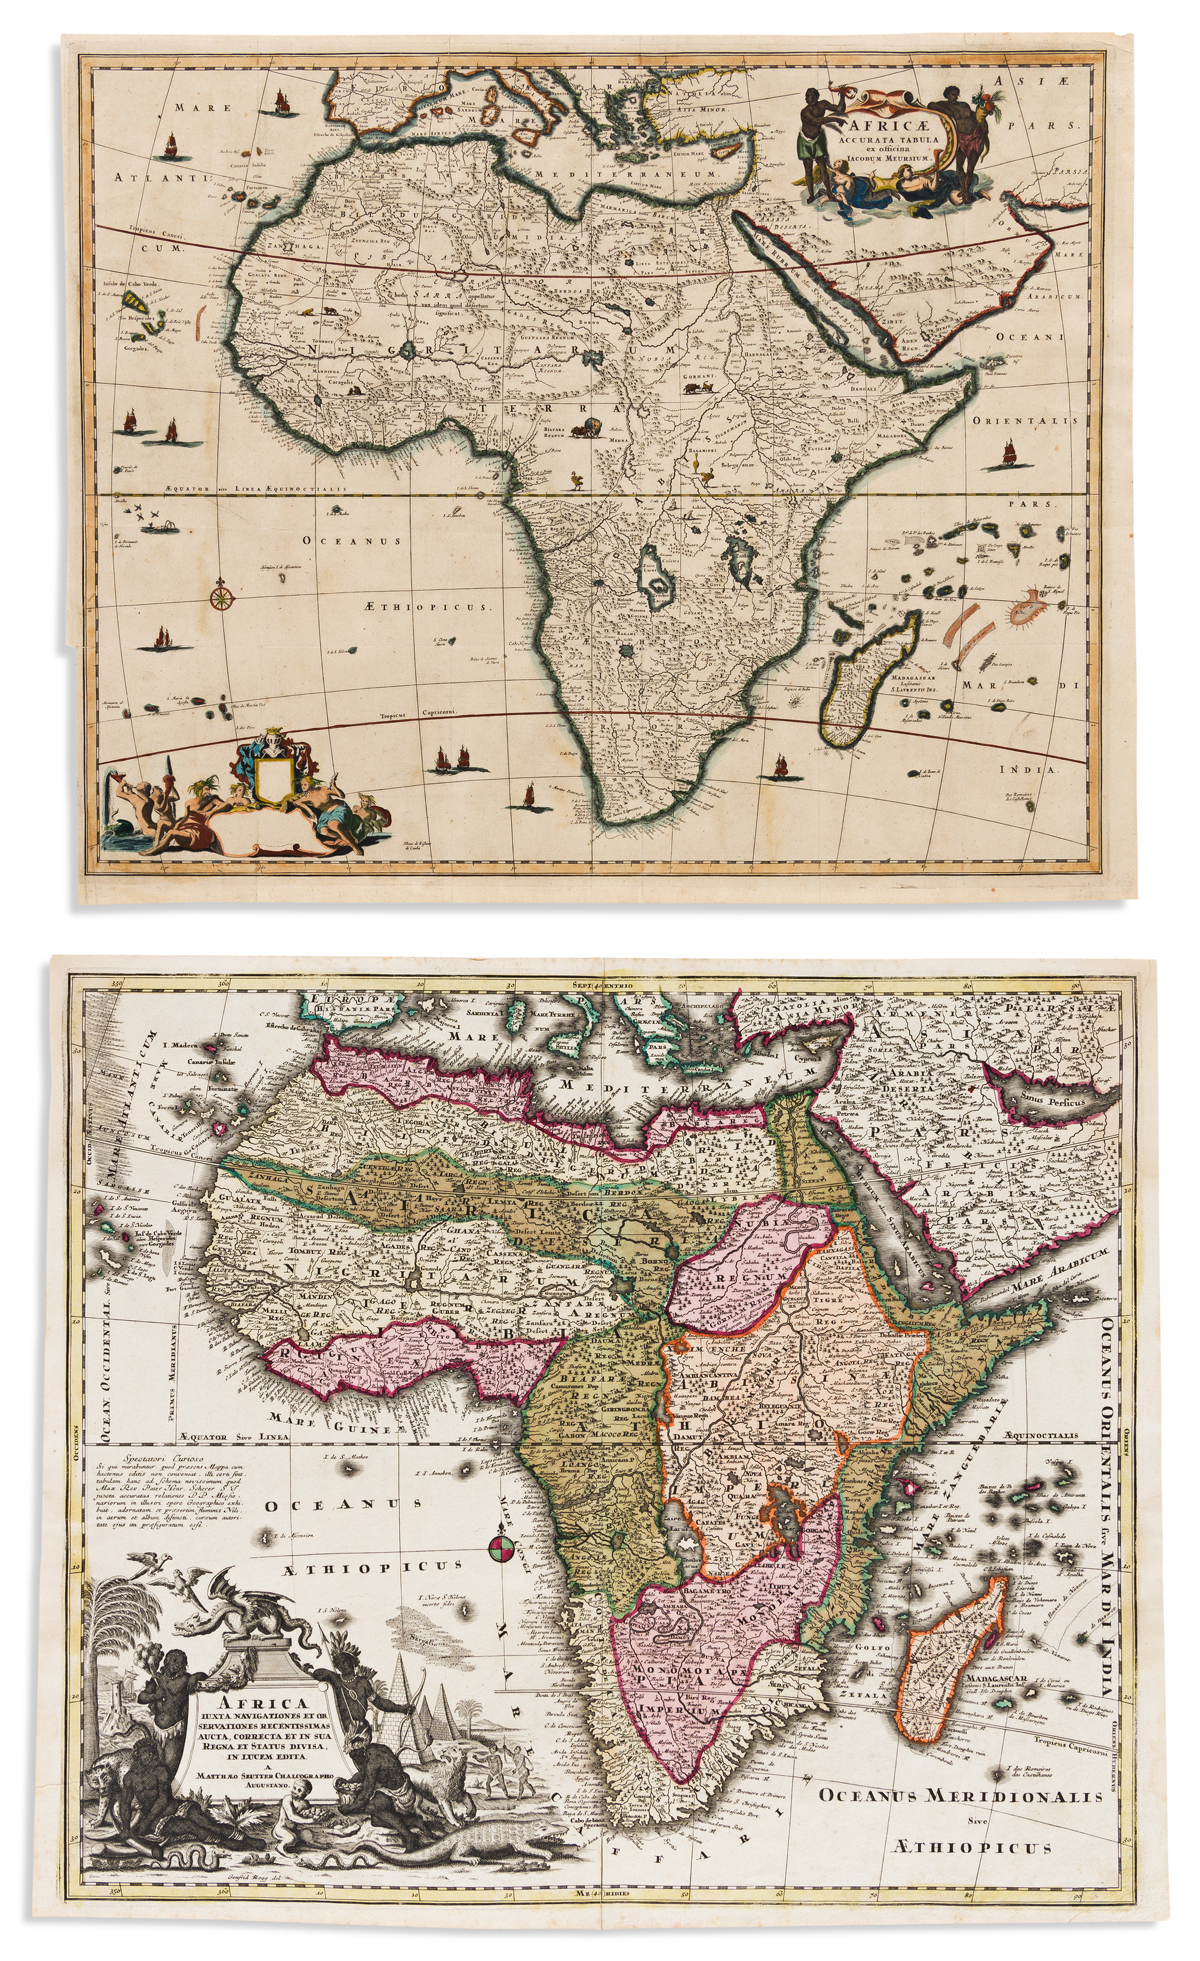 (AFRICA.) Two engraved maps of the continent.